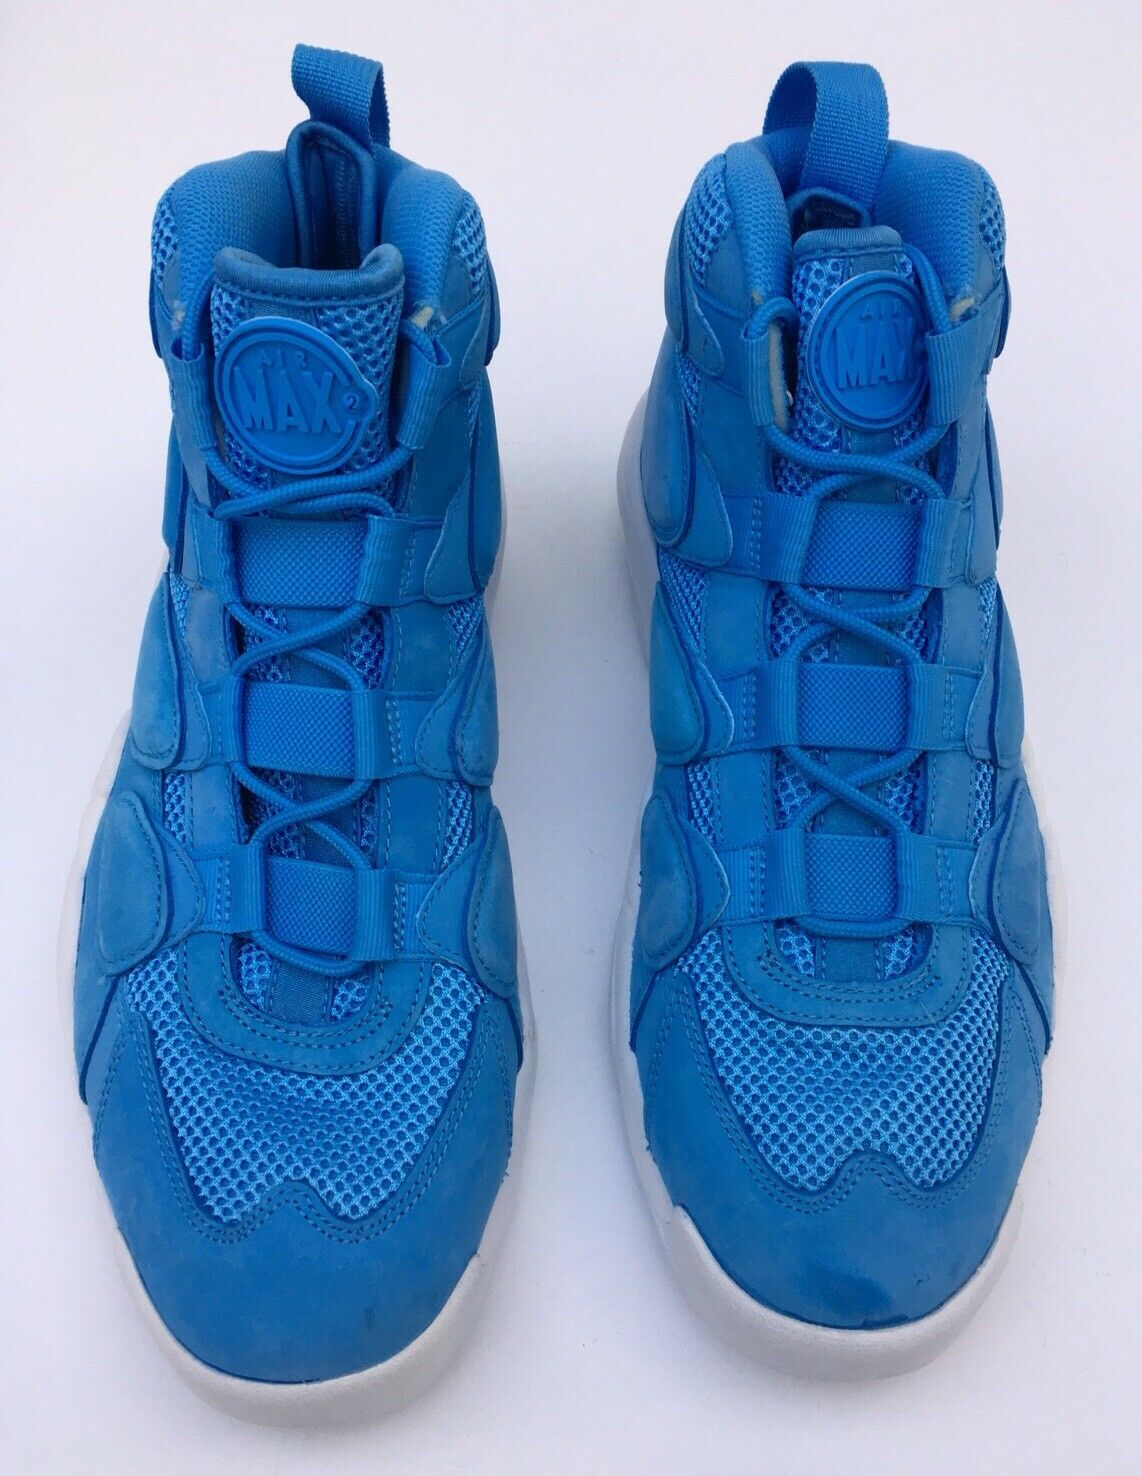 Uomo Nike Air Max2 Uptempo '94 AS QS 922931-400 Size 11.5 University Blue